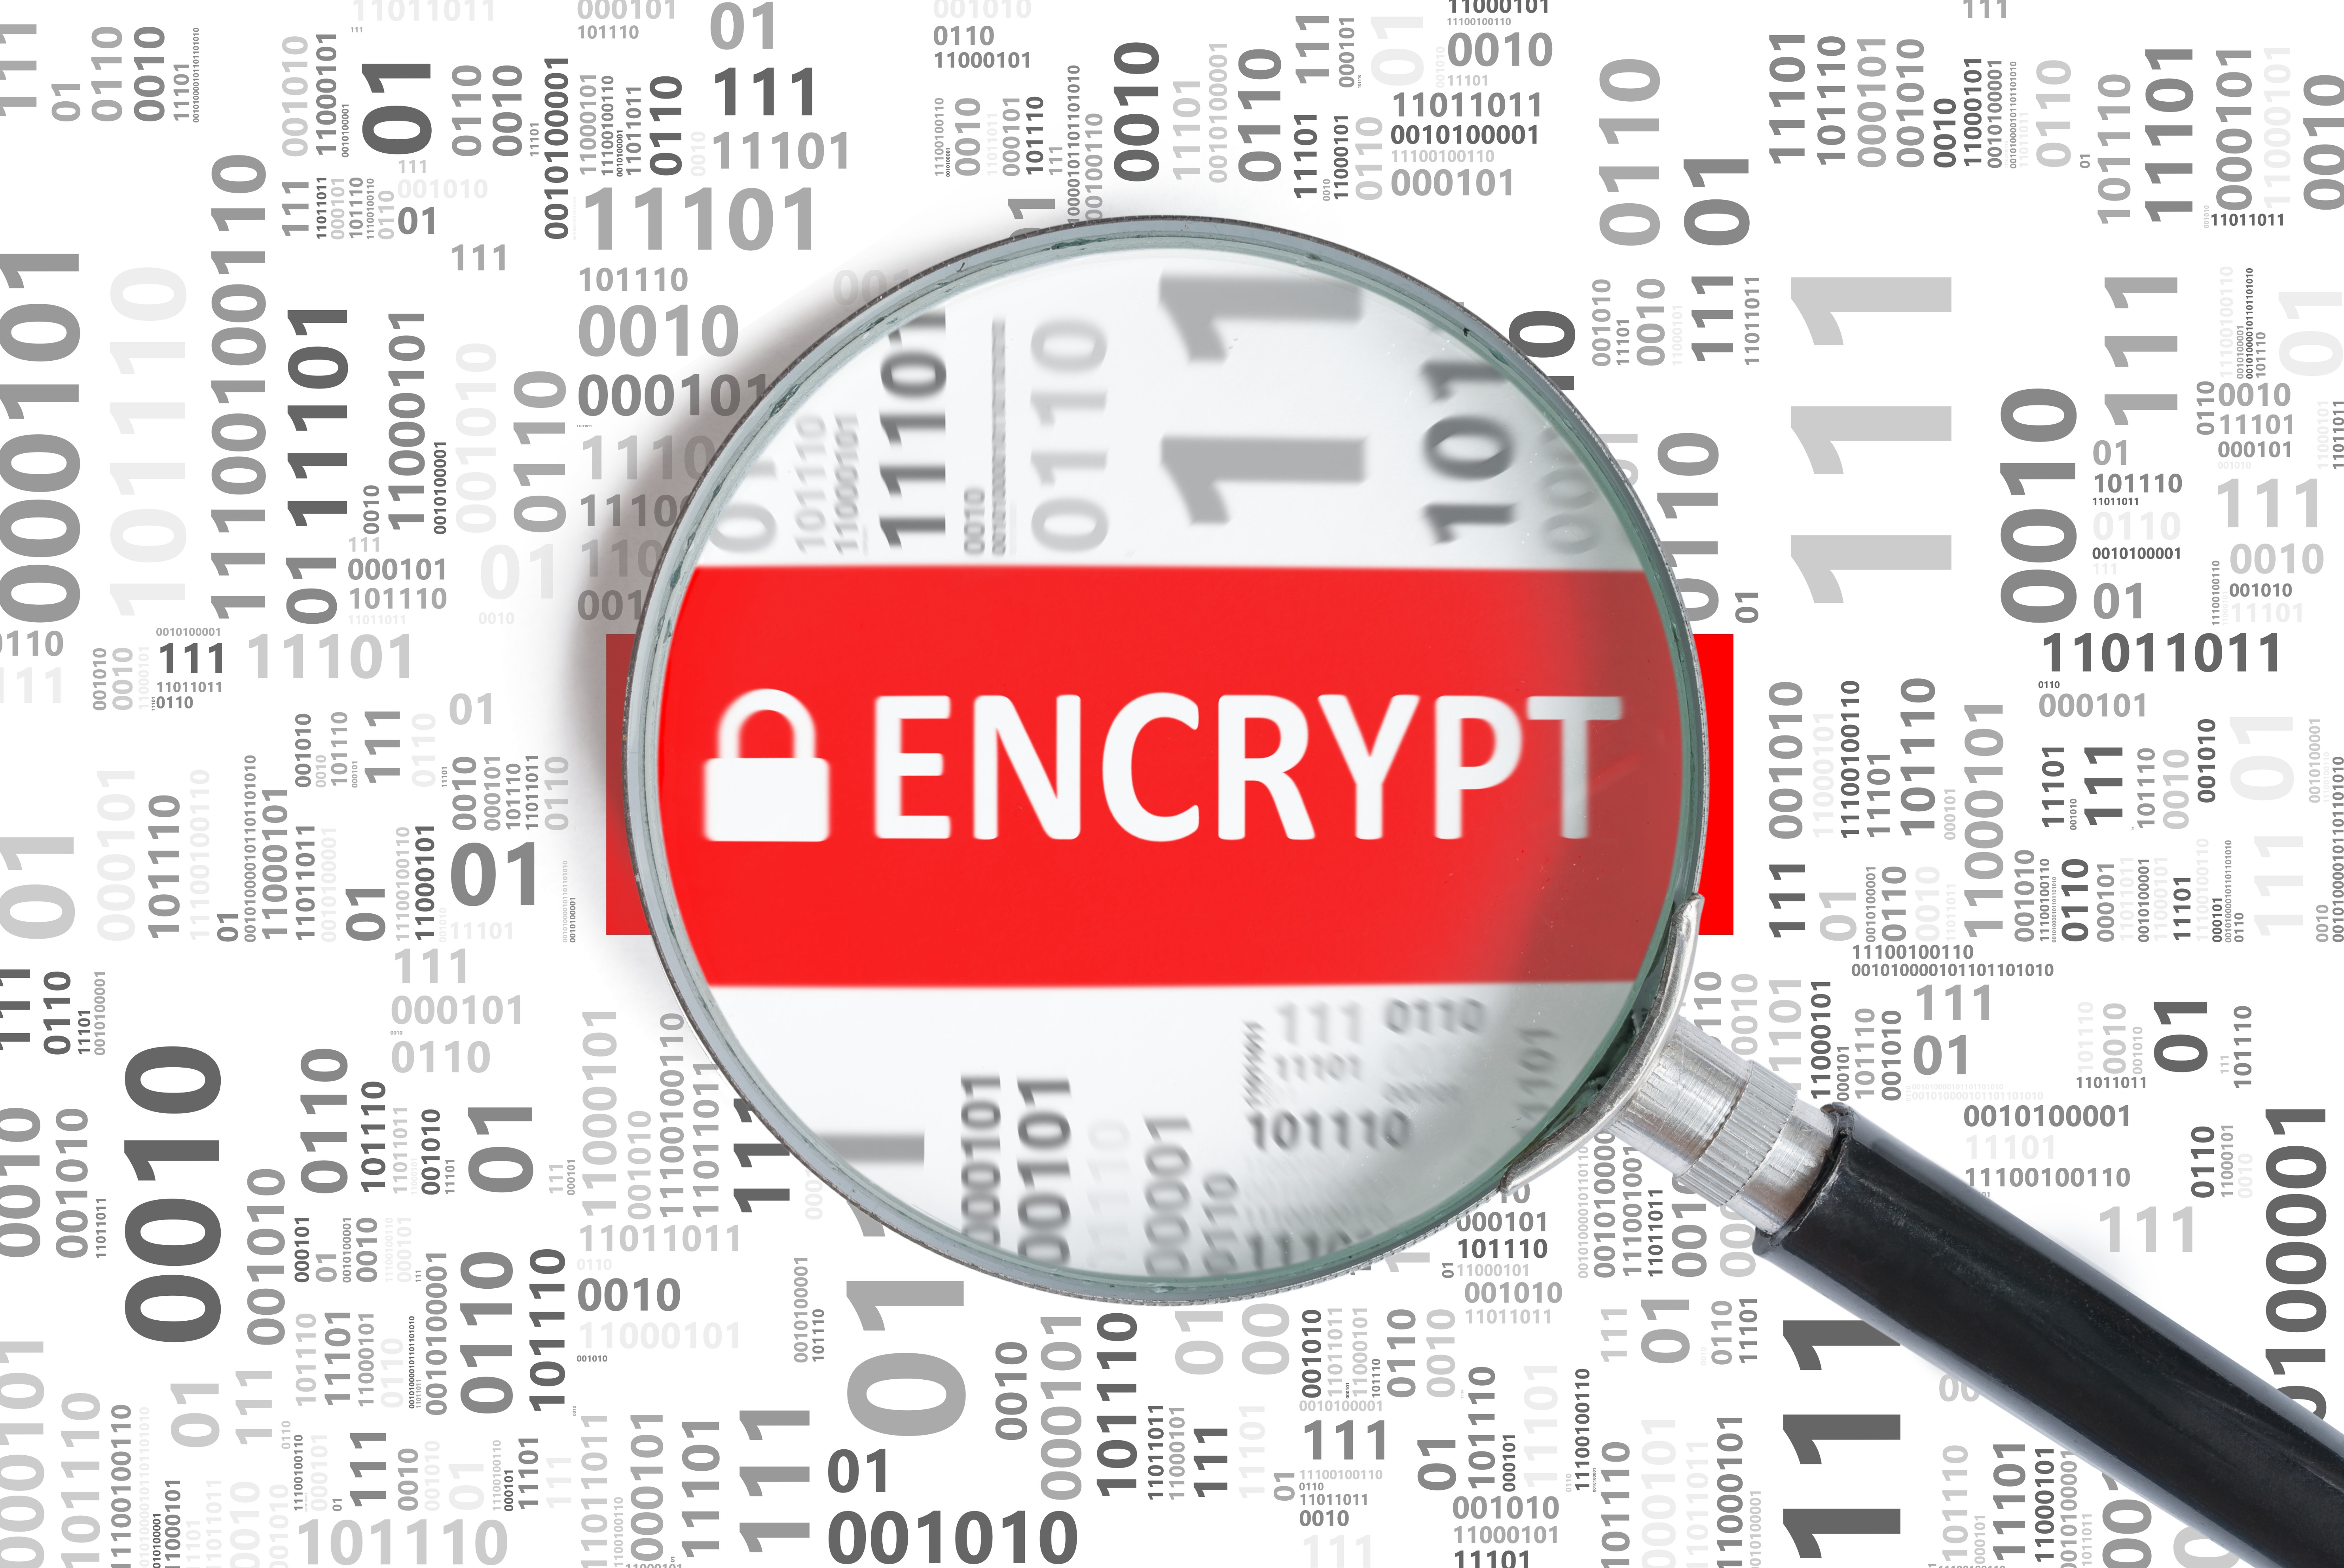 Encryption for VoIP